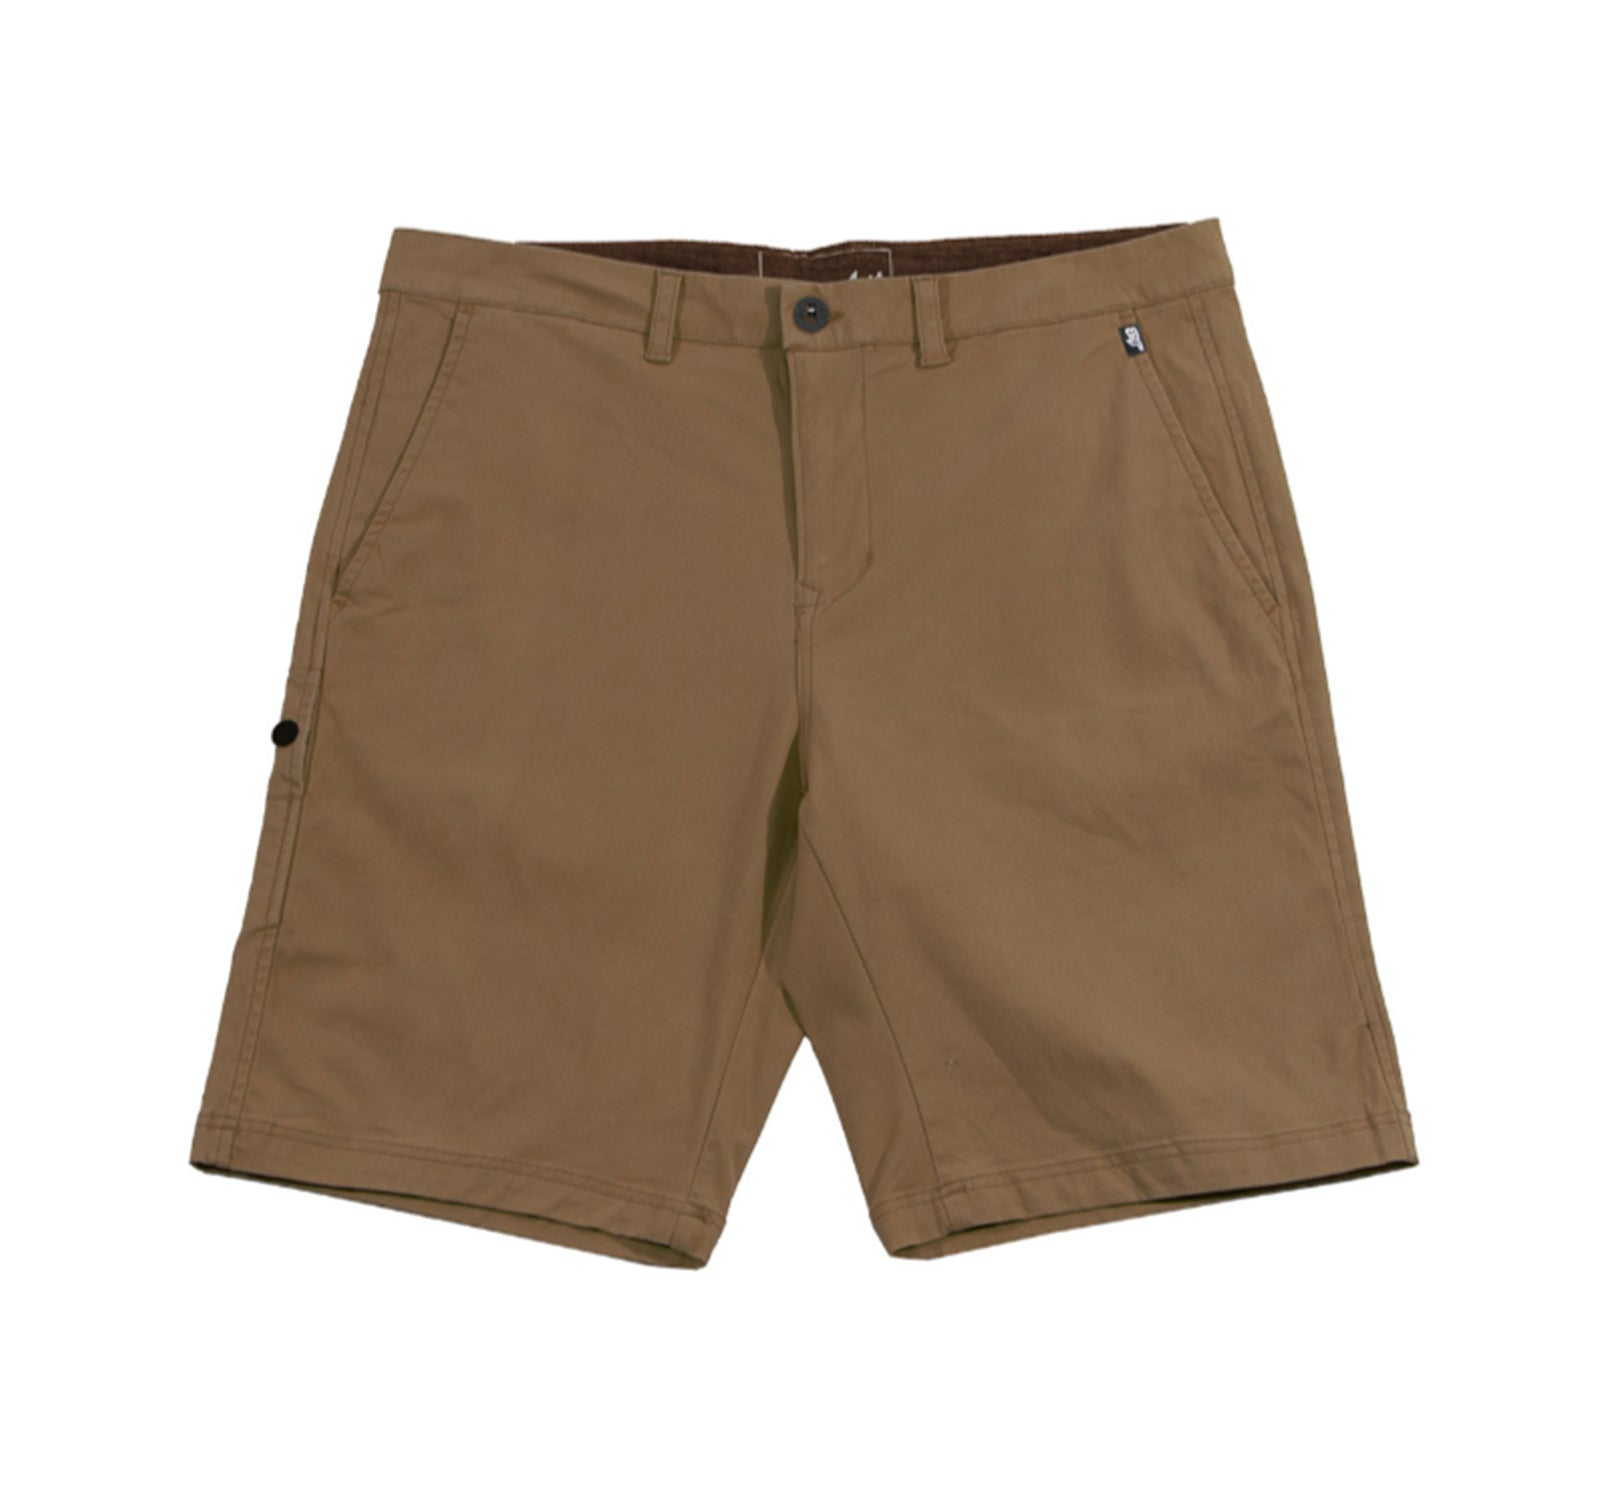 "Lost Destroyer 19"" Men's Walkshort"